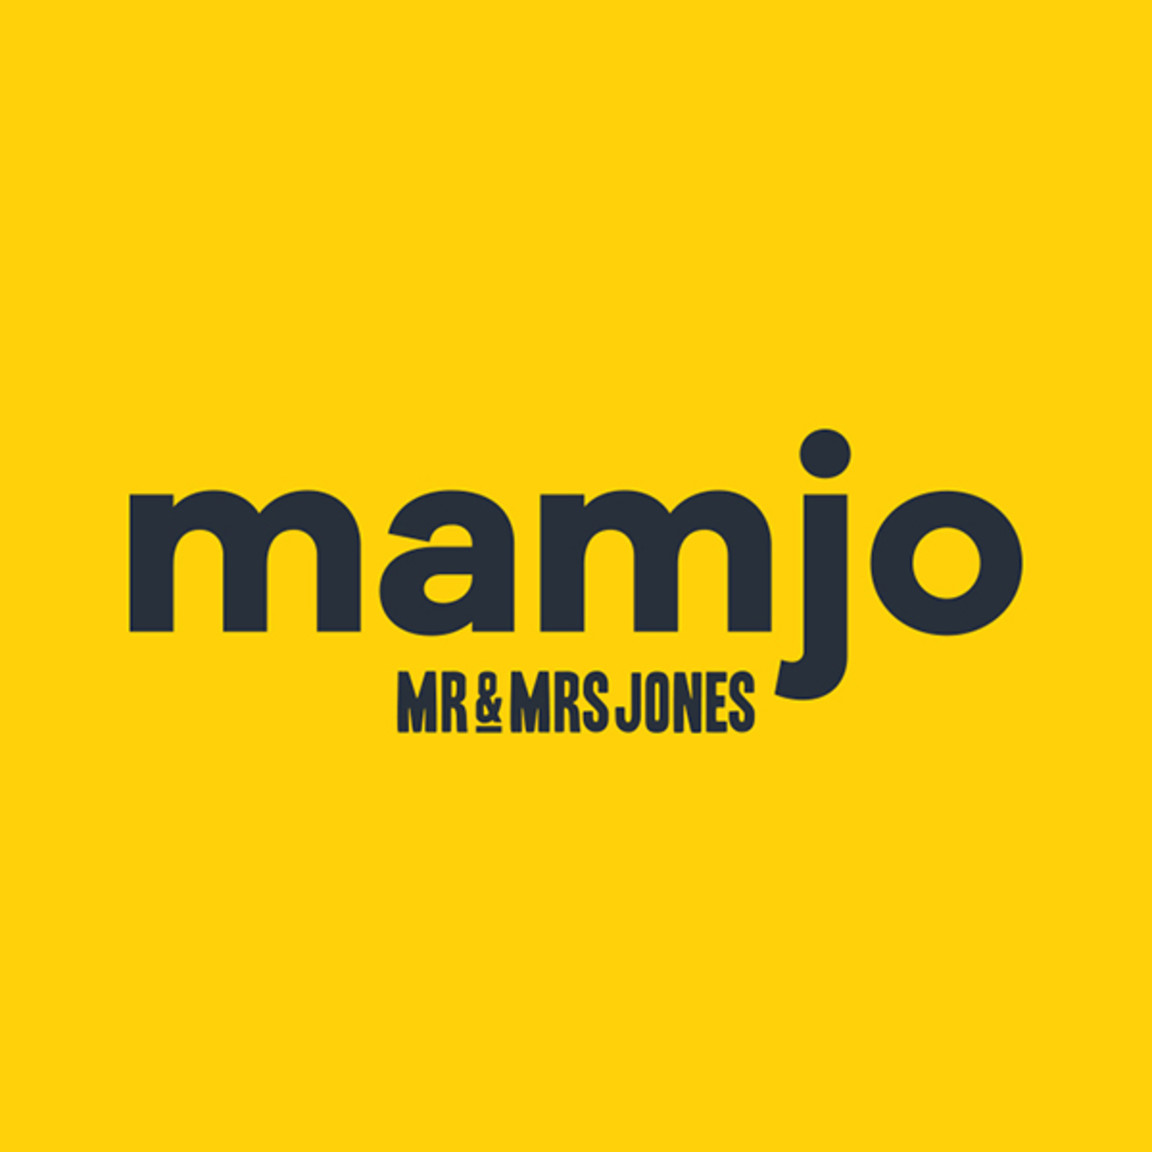 mamjo Mr & Mrs Jones